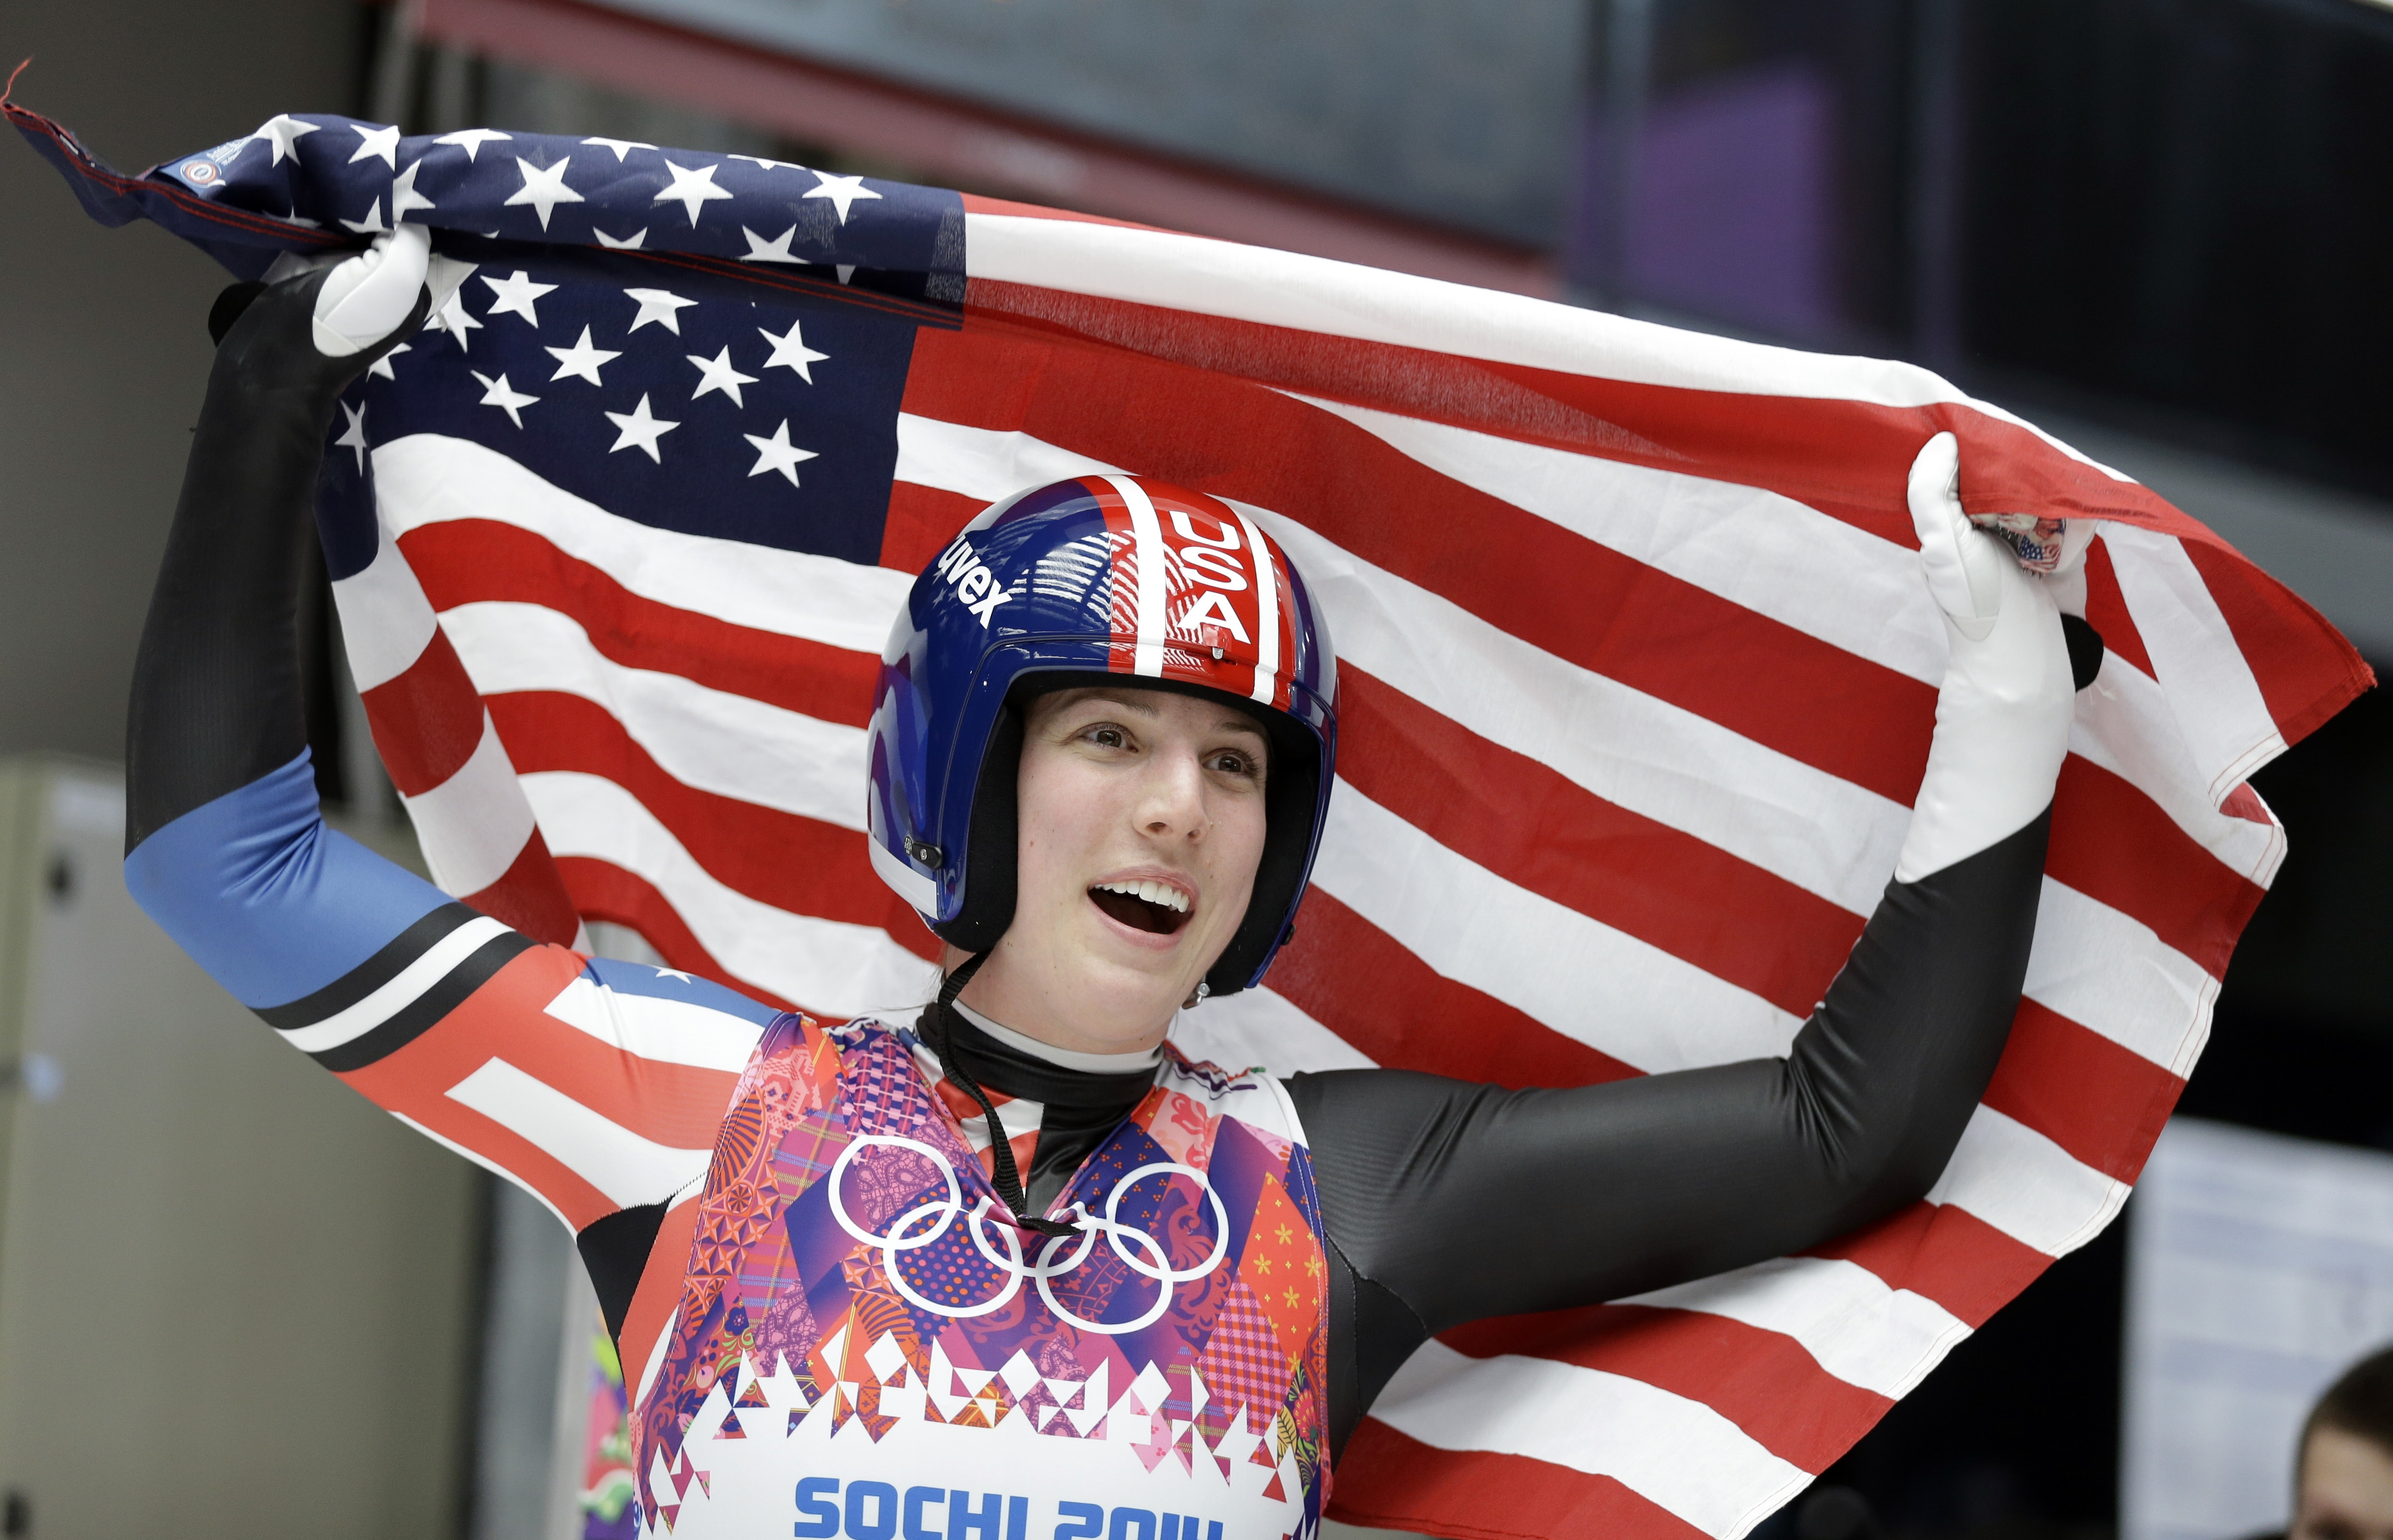 It was a great moment for luge bronze medalist Erin Hamlin, of tiny Remsen, N.Y.